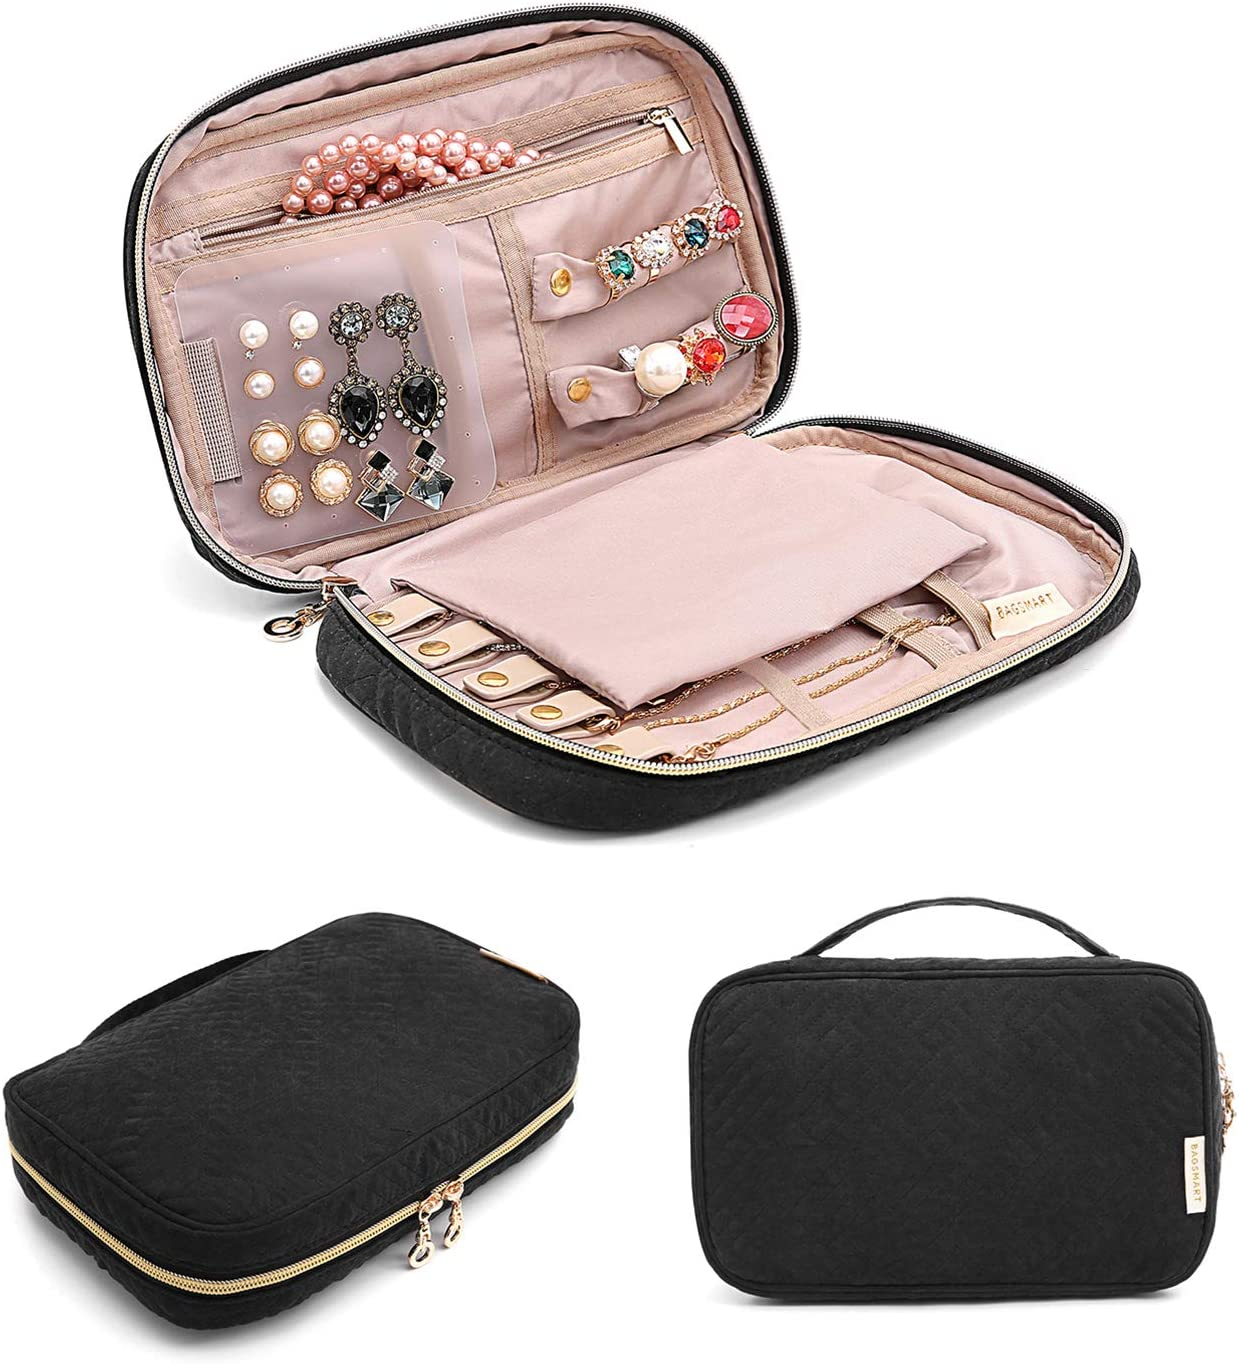 Amazon Com Bagsmart Jewelry Organizer Bag Travel Jewelry Storage Cases For Necklace Earrings Rings Bracelet Black Home Kitchen